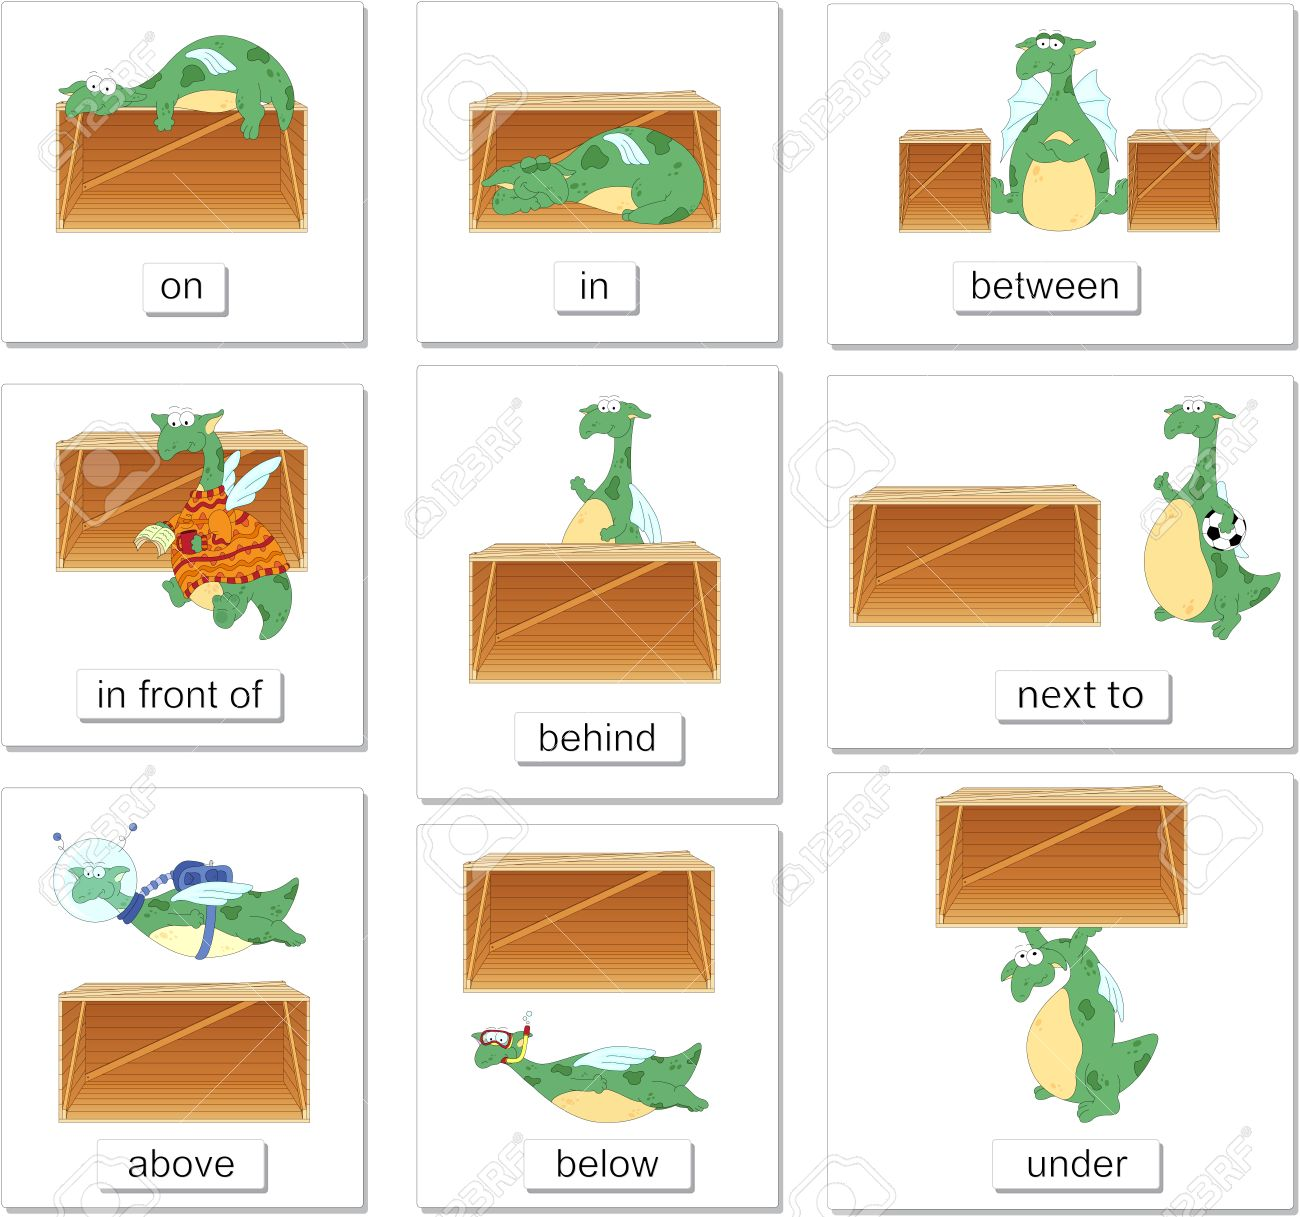 Cartoon Dragon And Box English Grammar In Pictures For Students Pupils Preschoolers